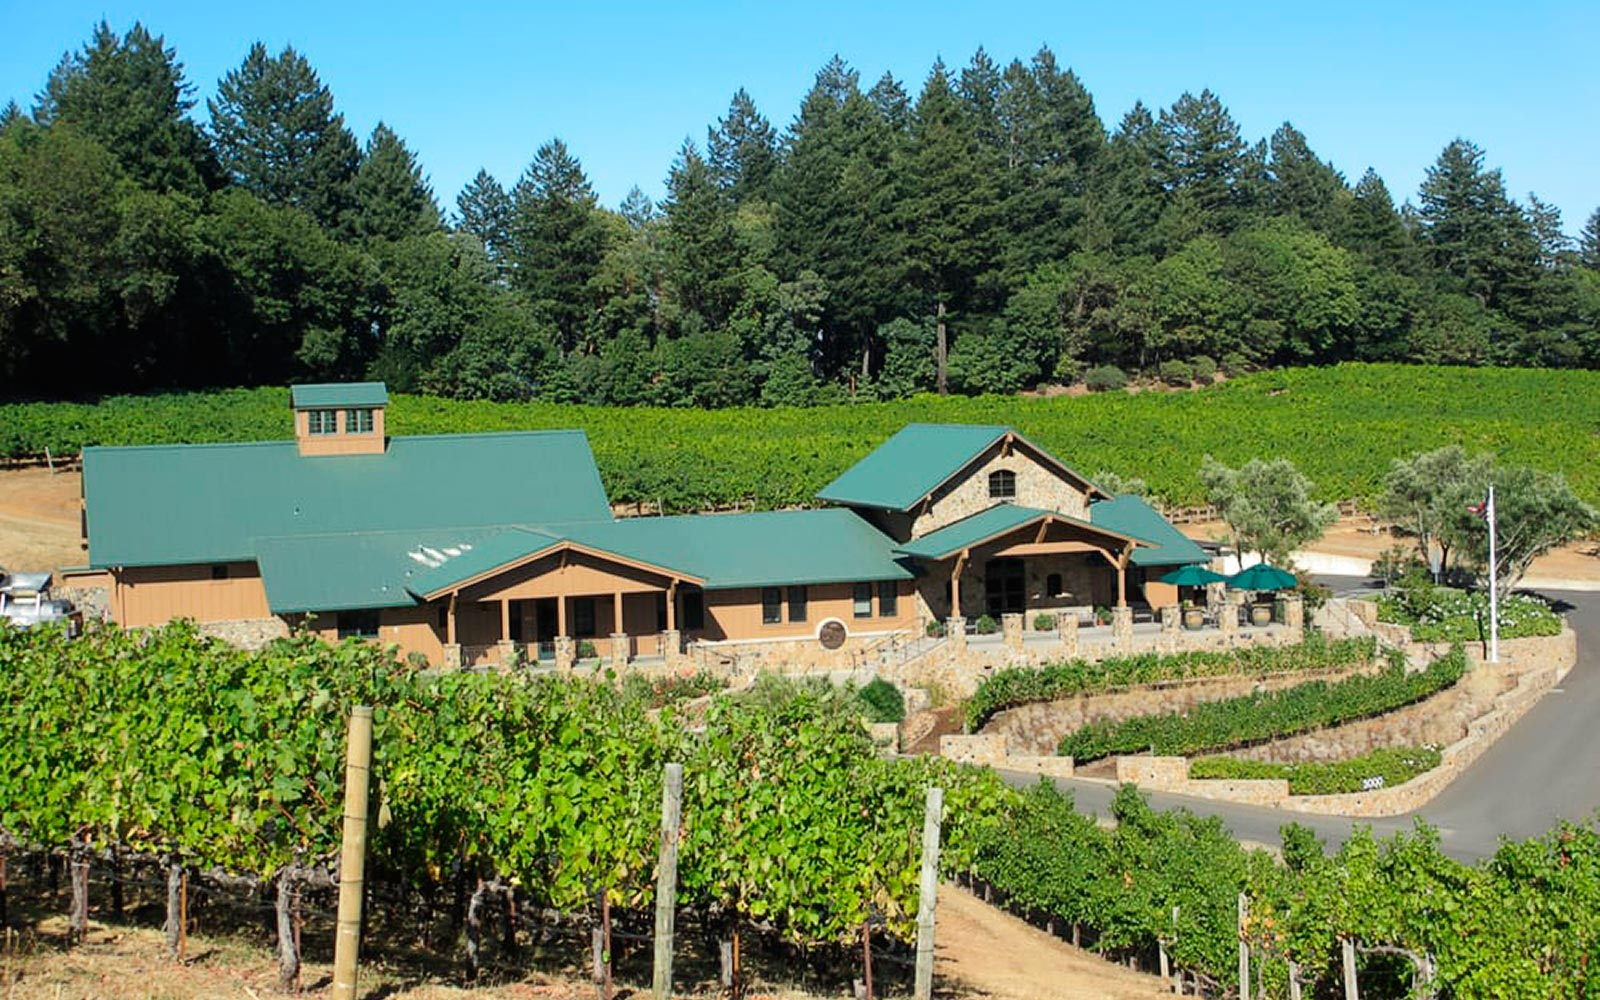 Best Vineyards in the USA According to Yelp